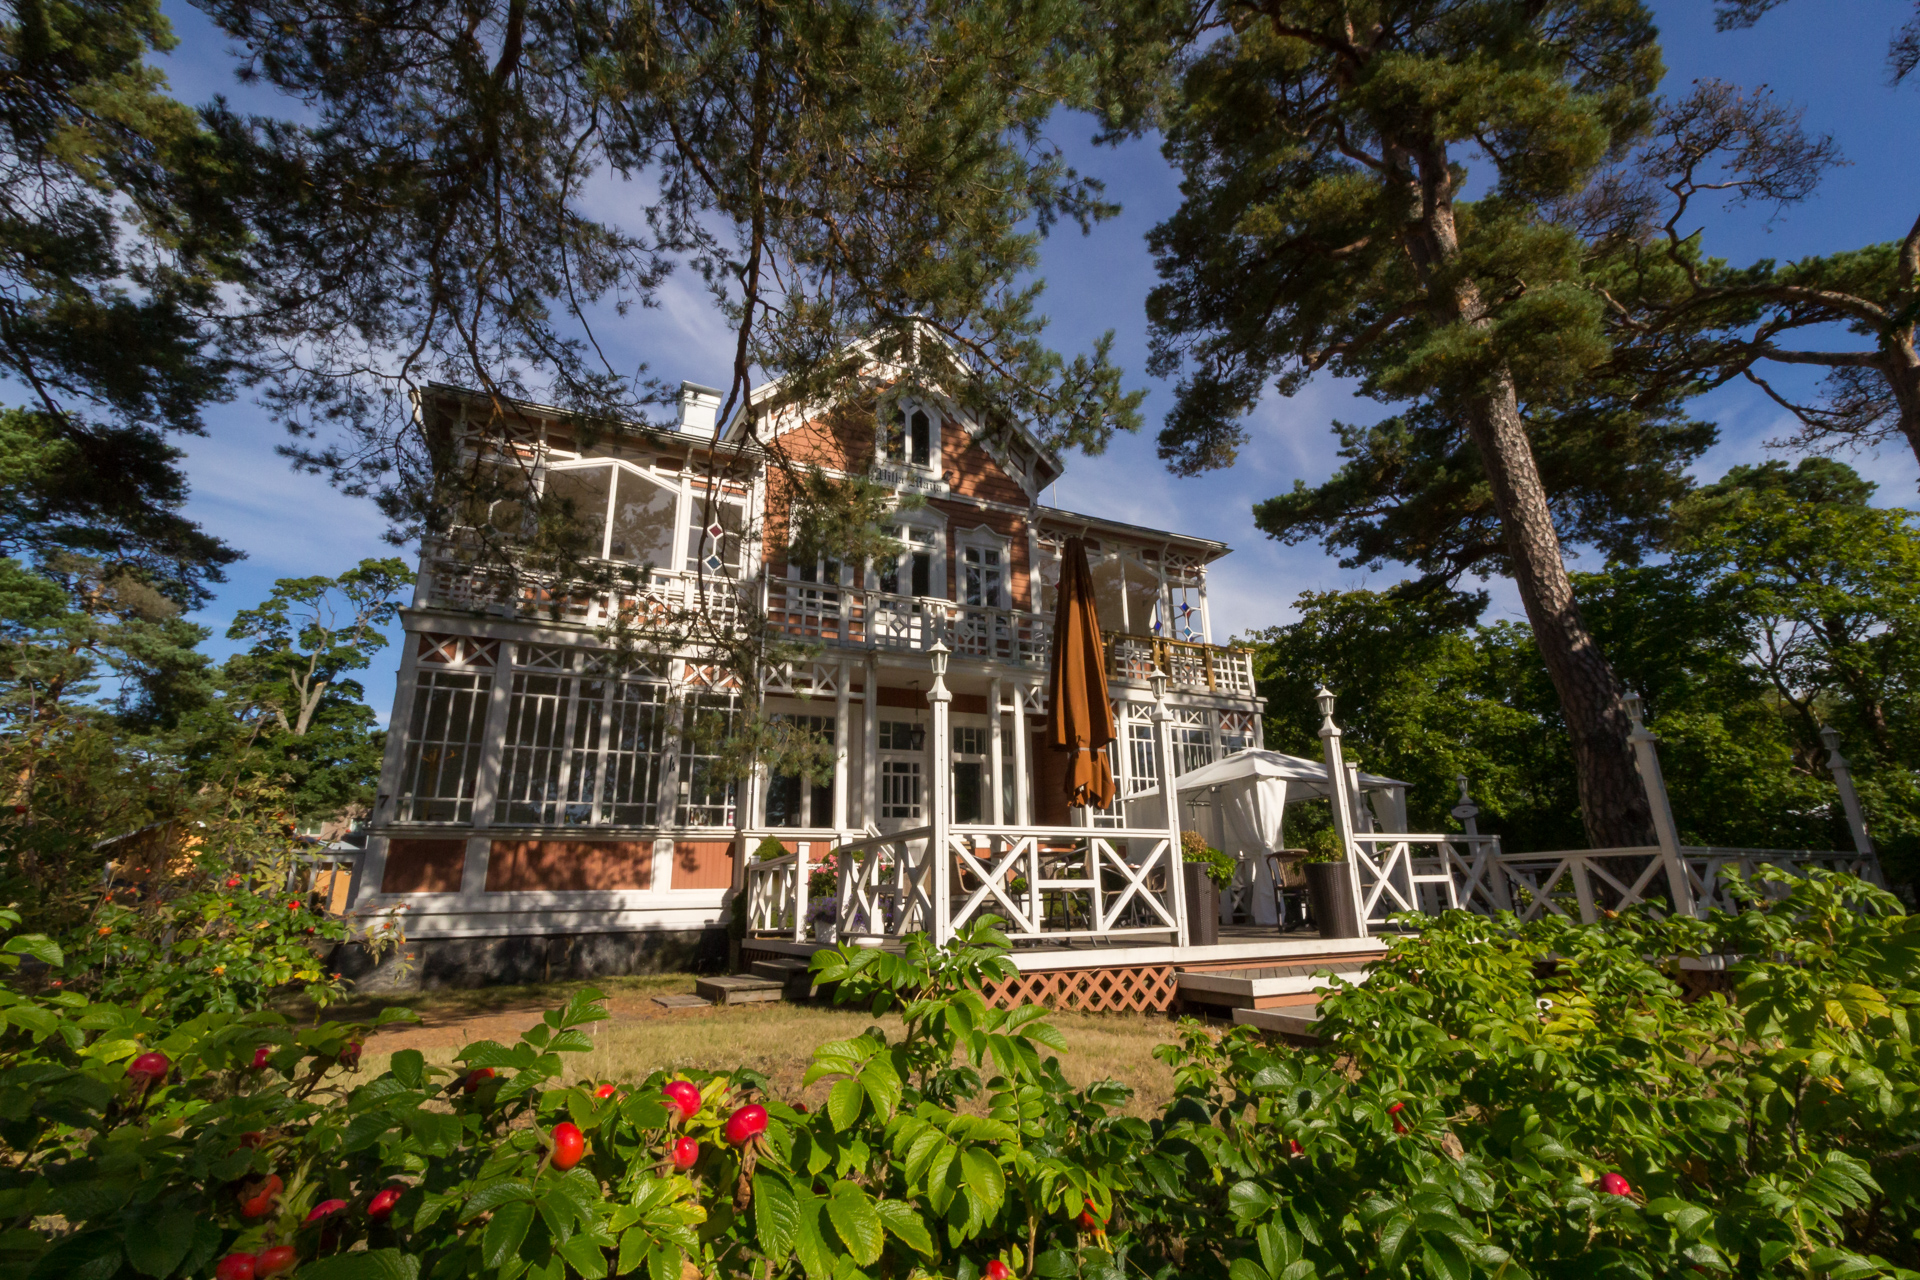 Hotel Villa Maija Property Photos 2015.